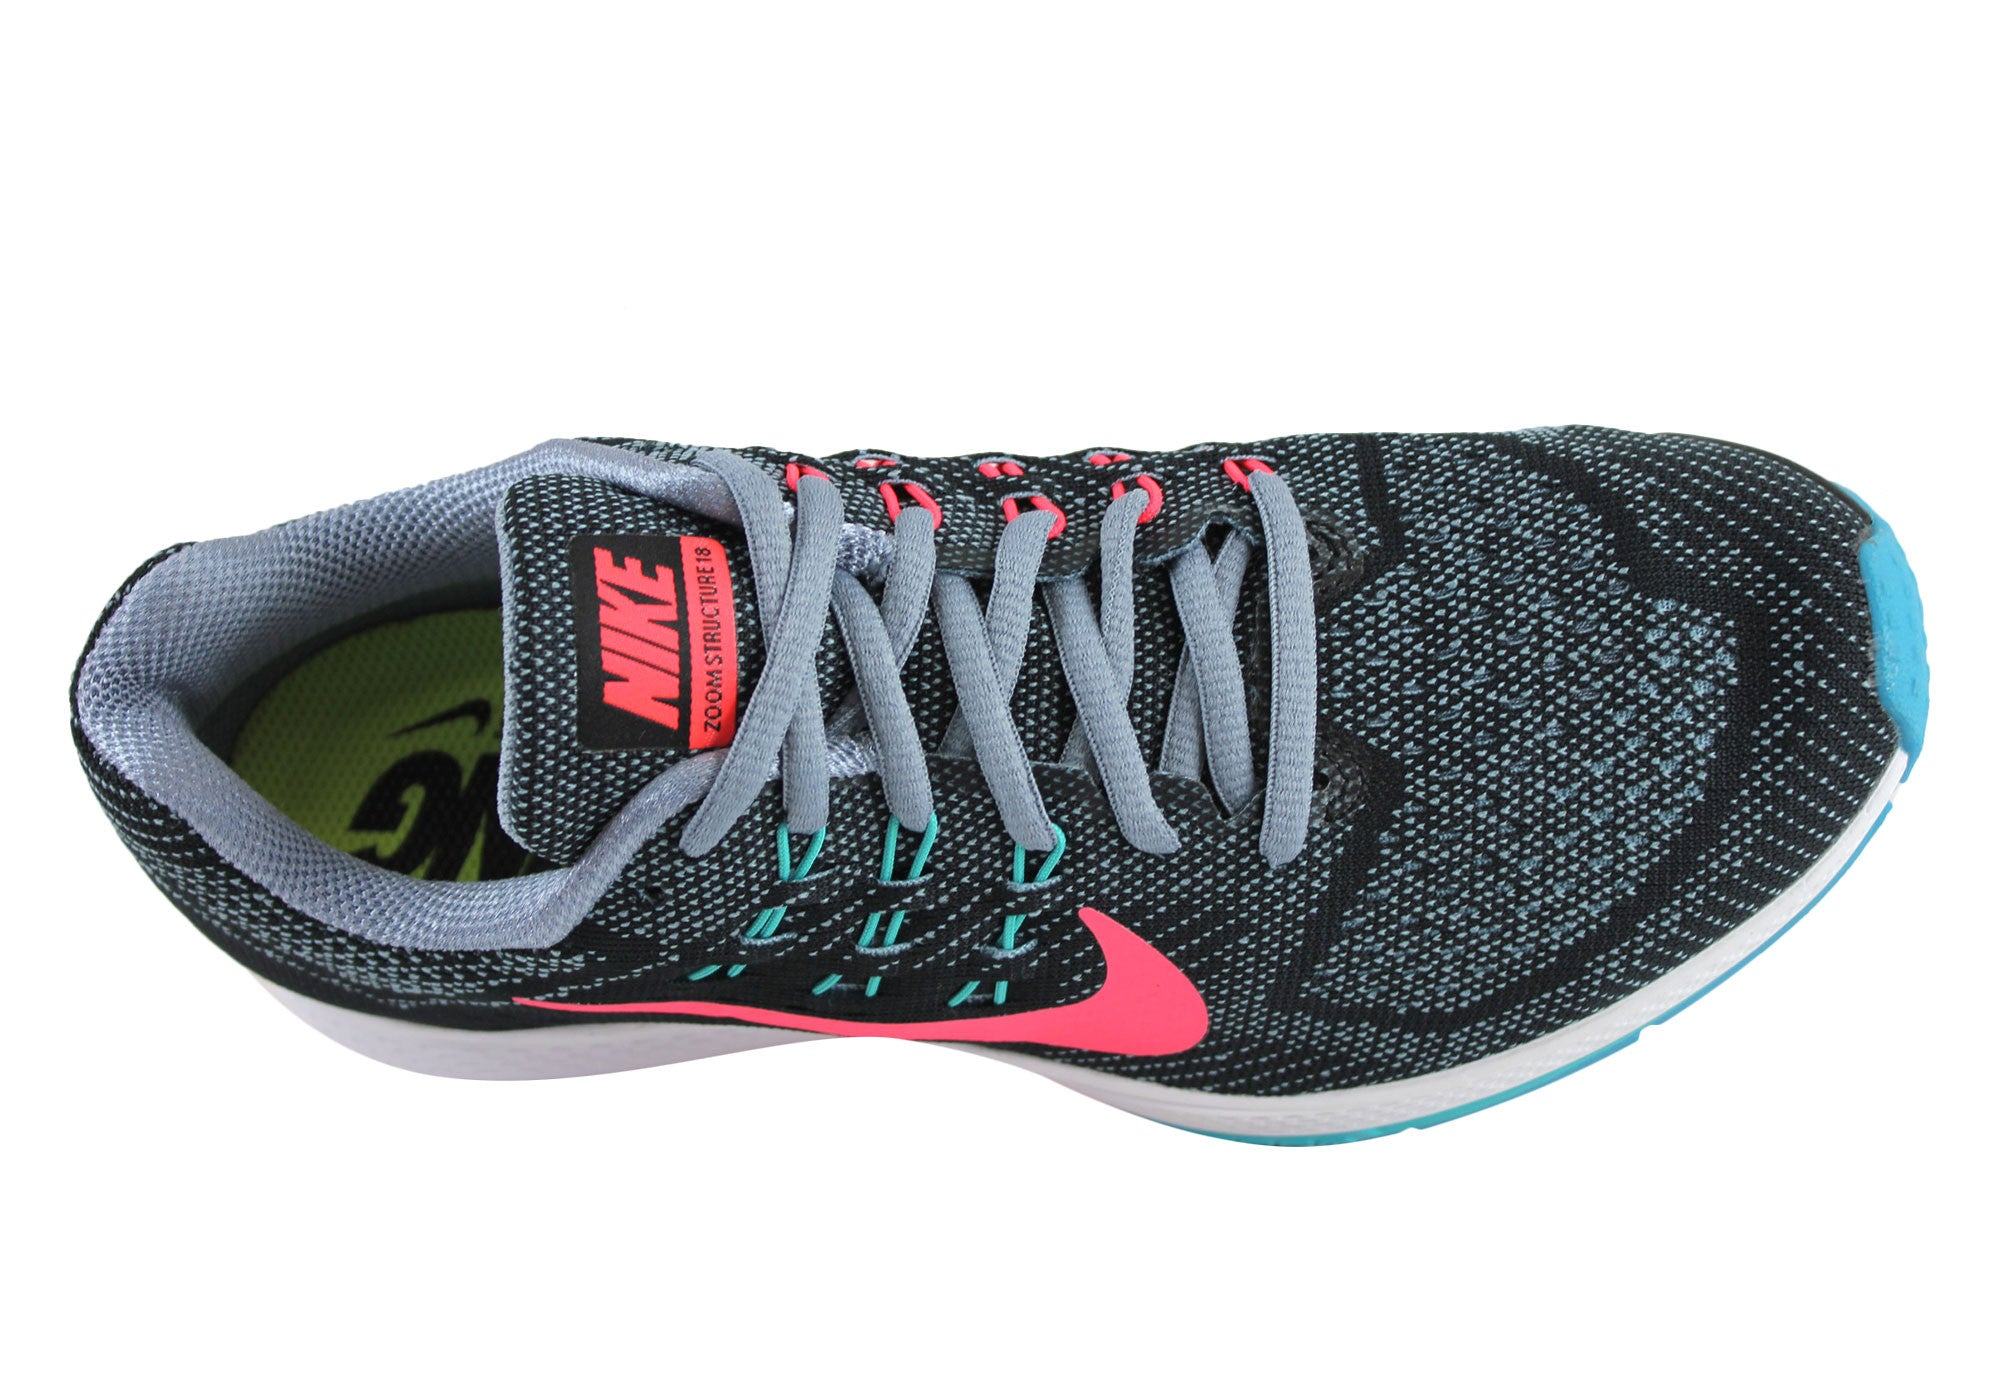 Nike Air Zoom Structure 18 Womens Premium Cushioned Running Shoes